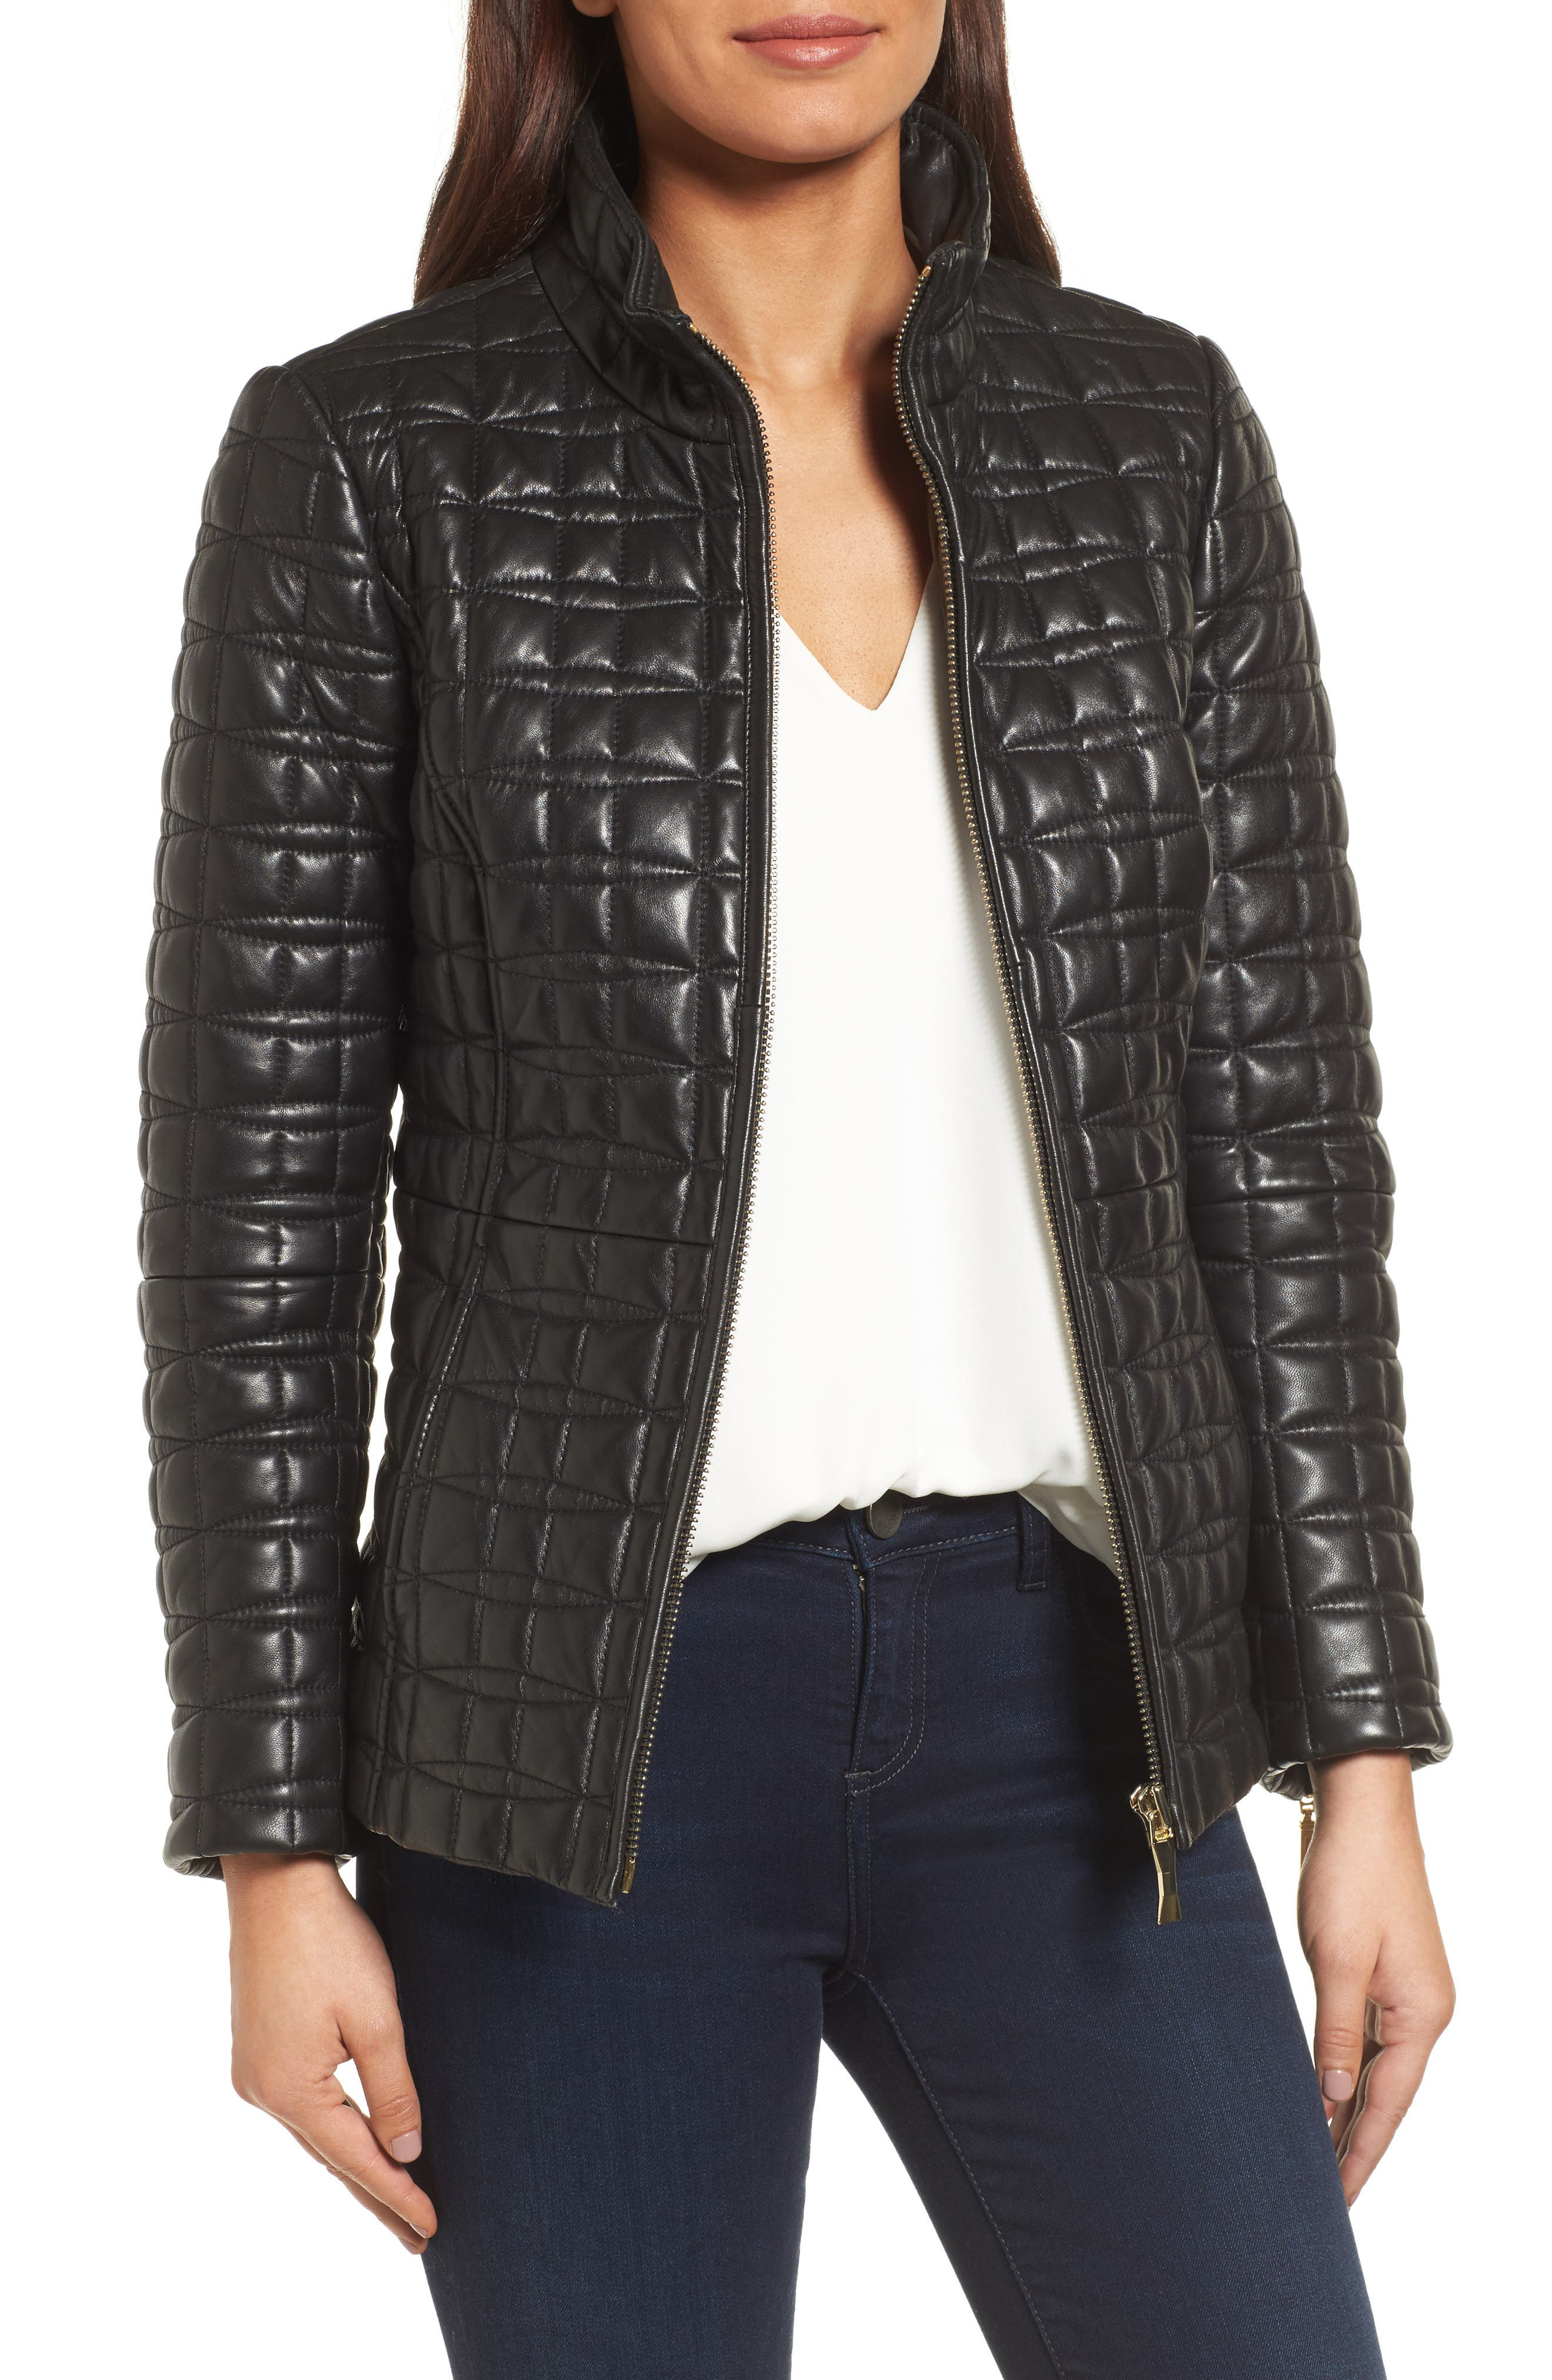 quilted leather jacket,                         Main,                         color, Black